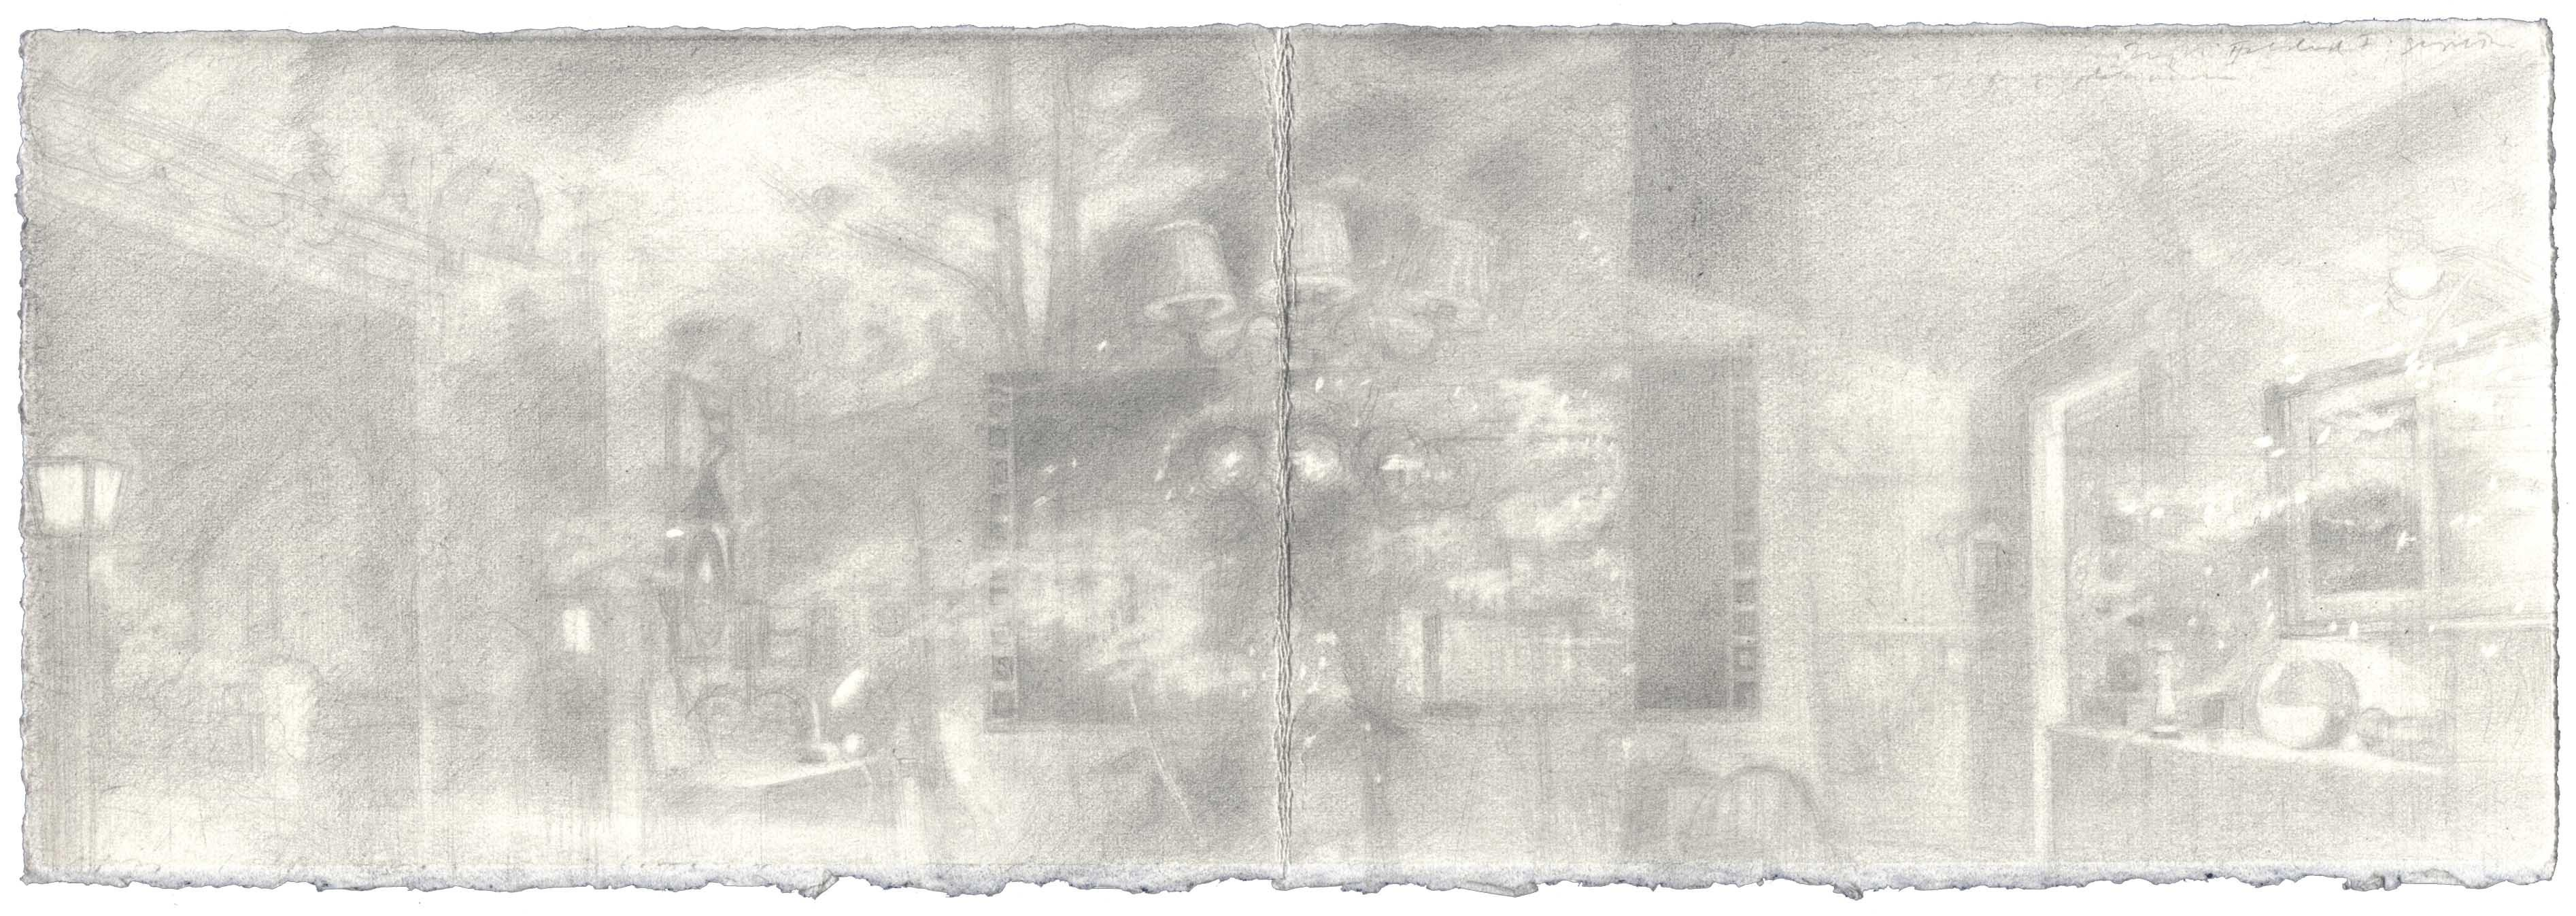 Folded Self-Portrait with Night I: Graphite image